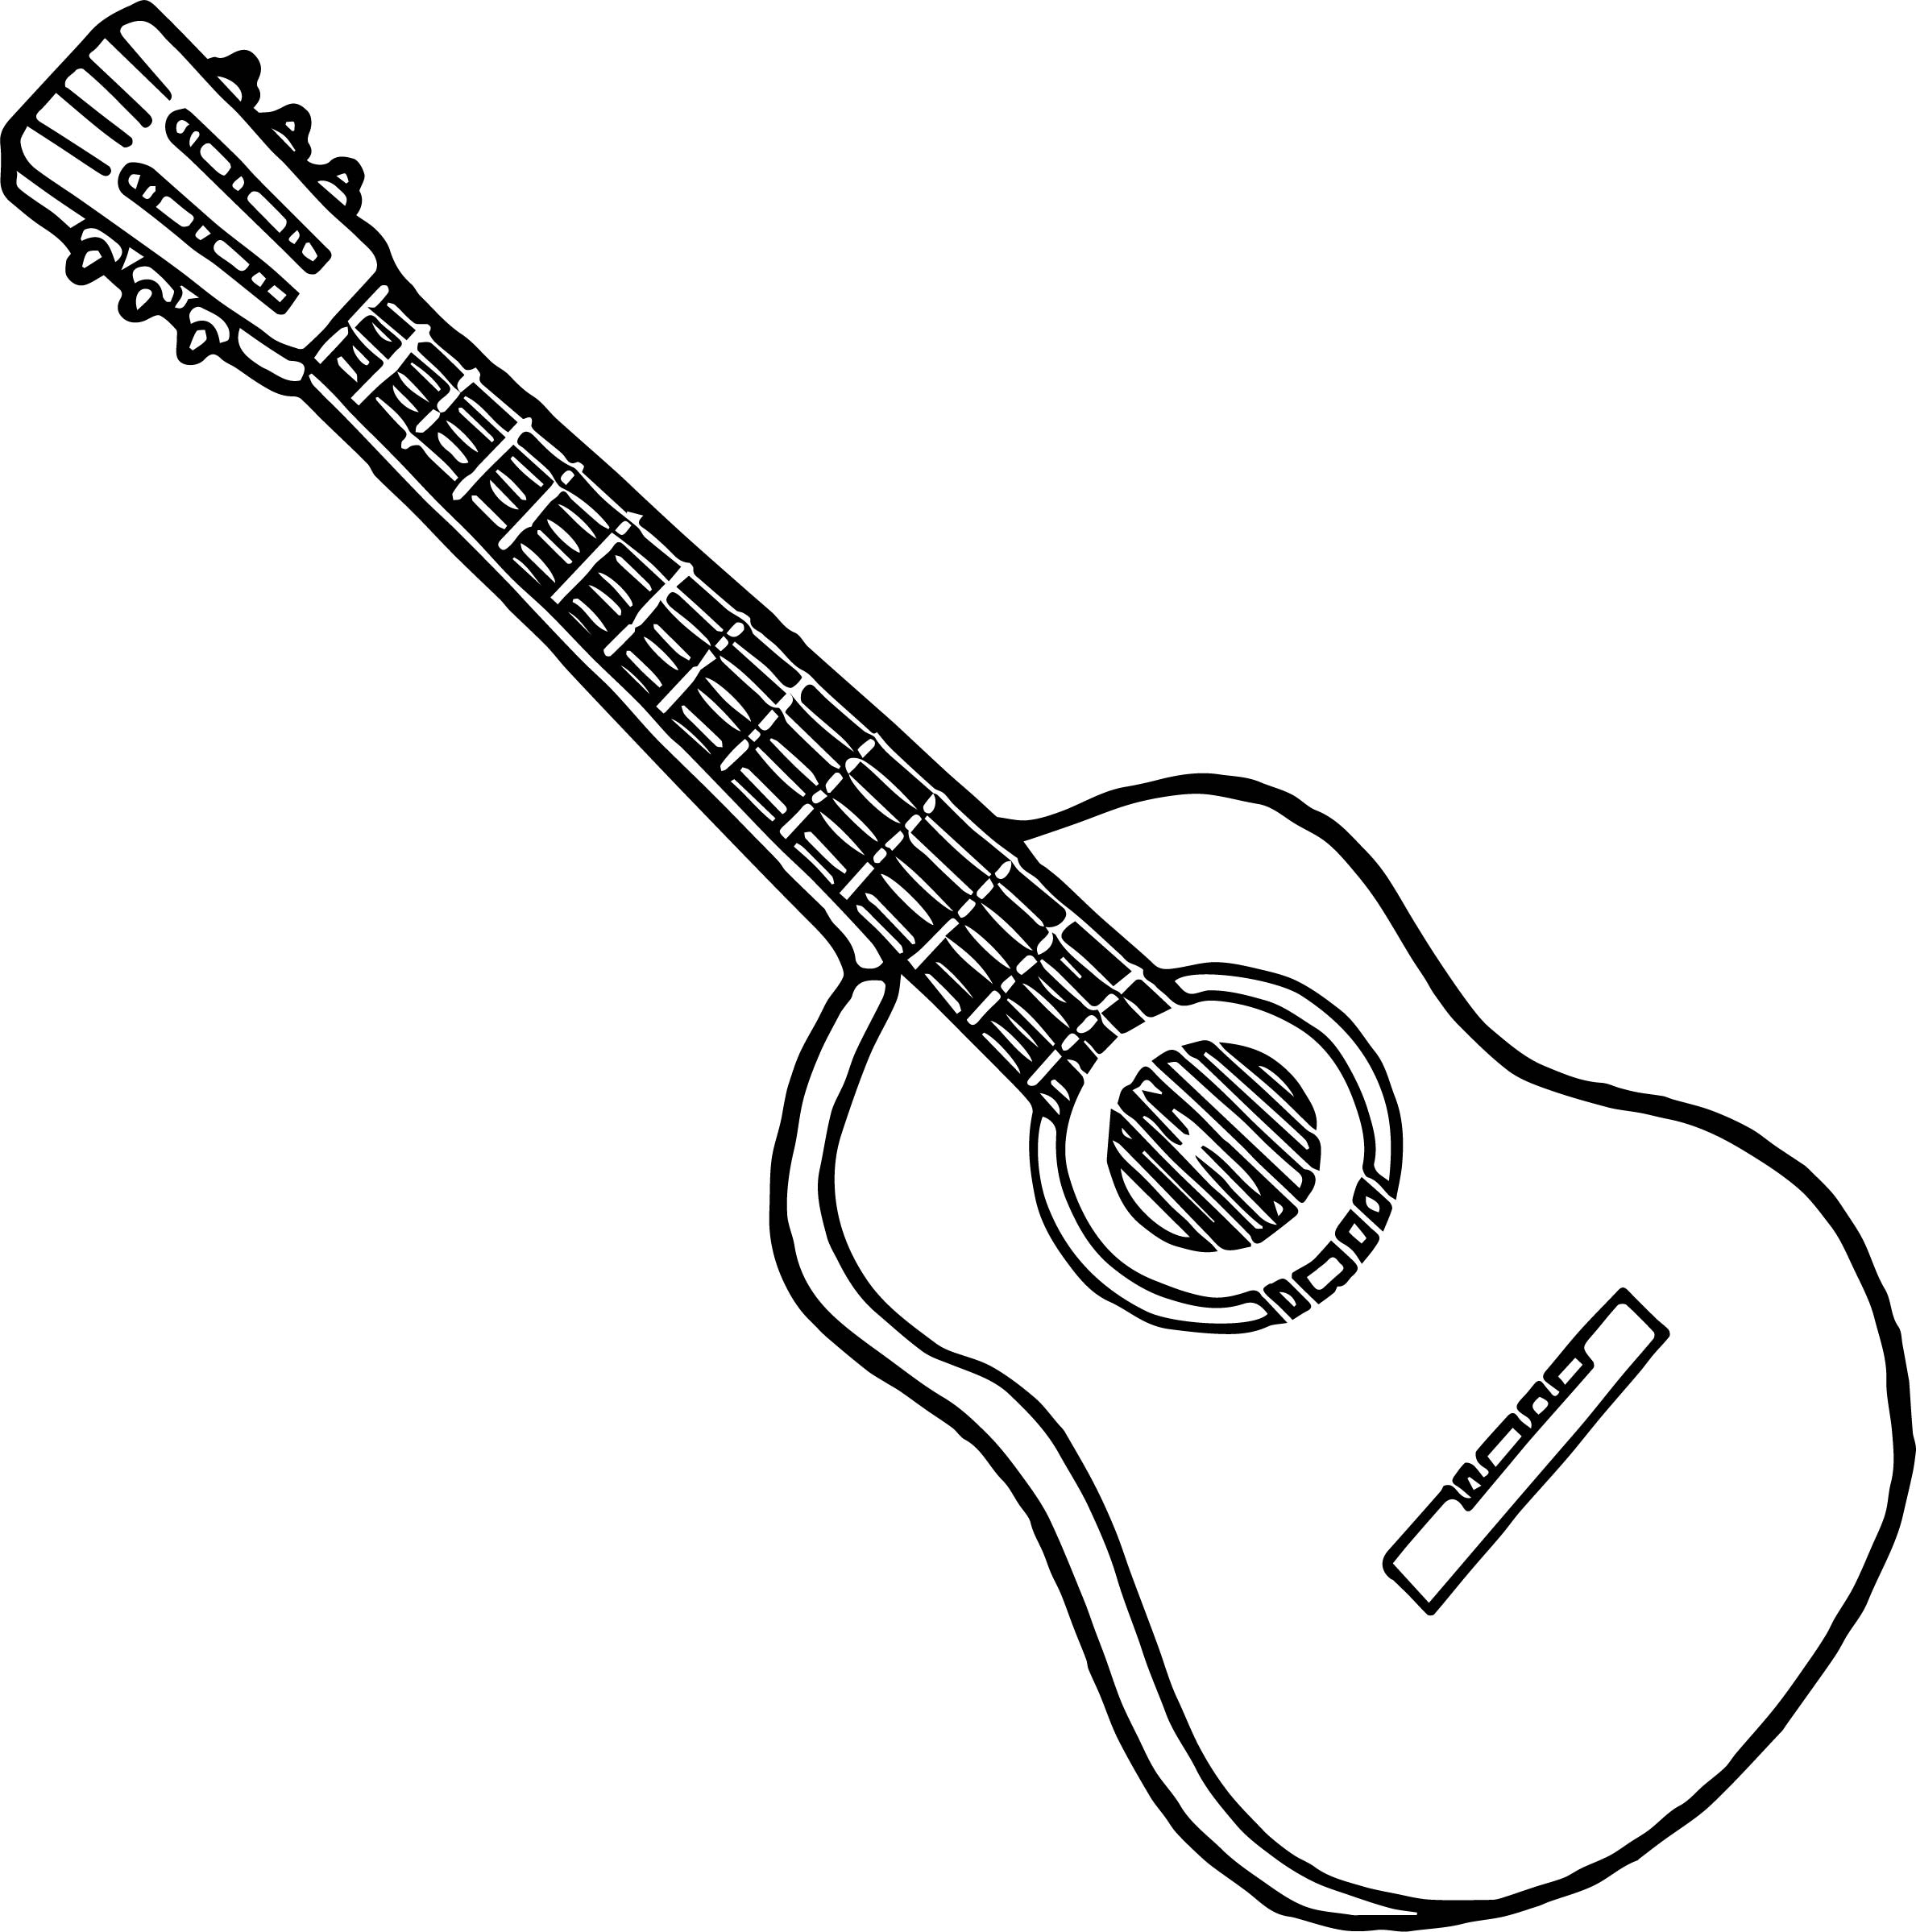 strings guitar playing the guitar coloring page - Guitar Coloring Pages